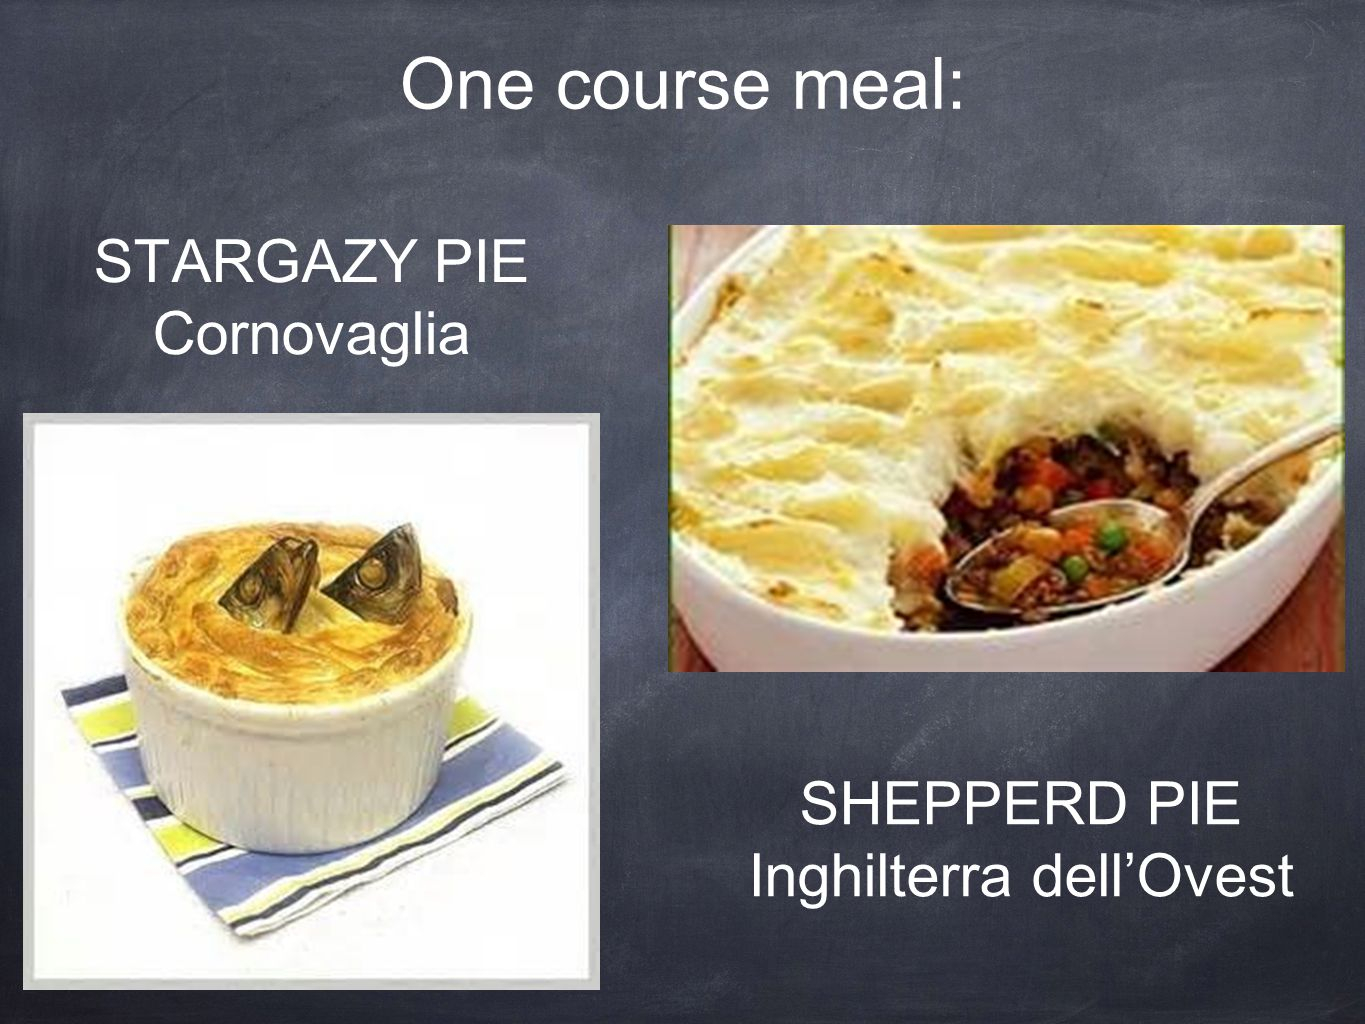 One course meal: stargazy pie Cornovaglia